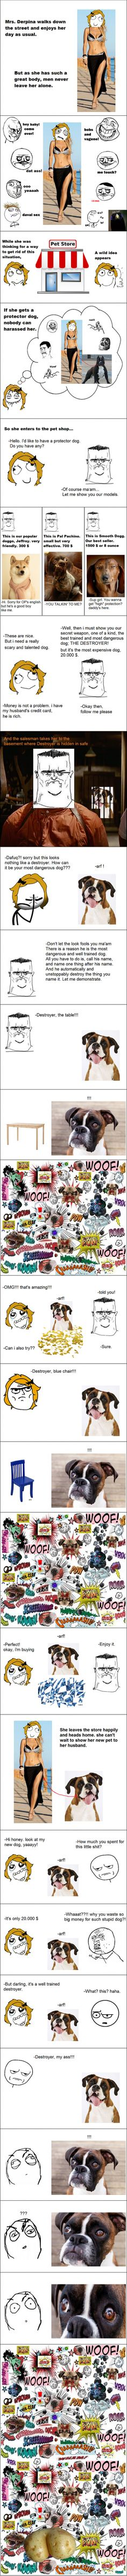 My second rage comics try. Hope you like it